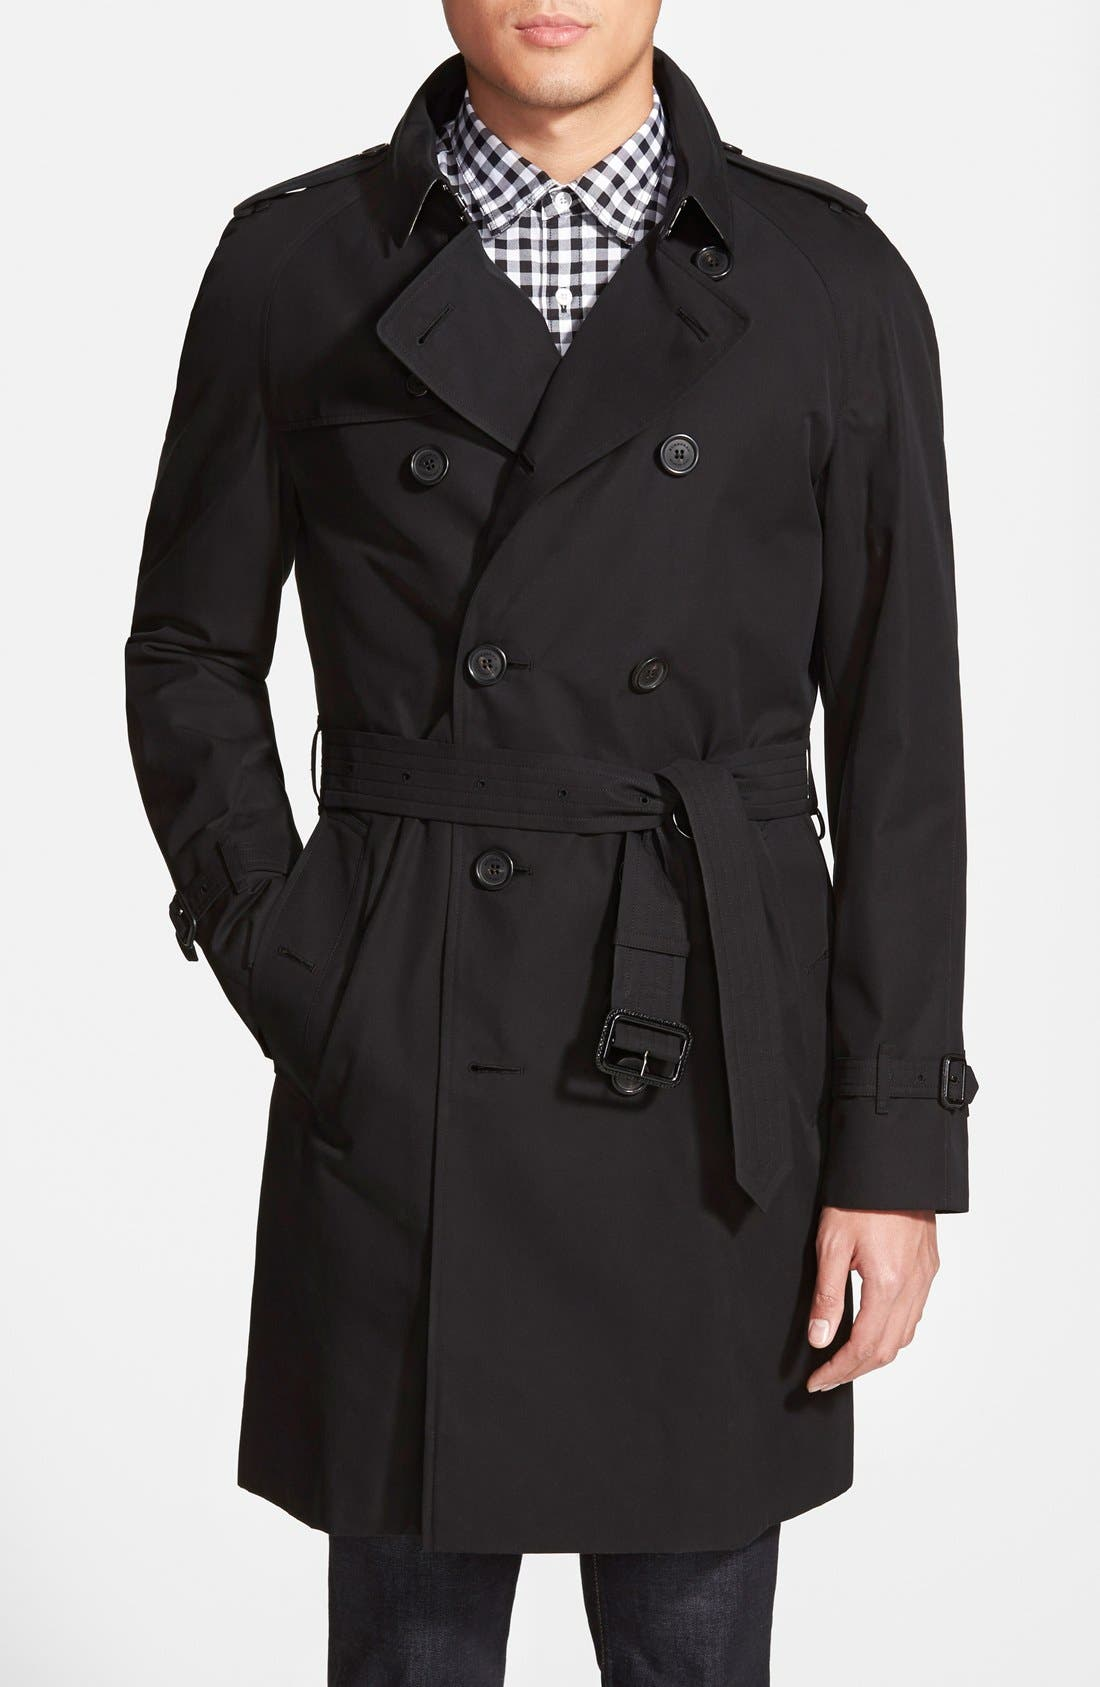 London 'Wiltshire' Trim Fit Double Breasted Trench Coat,                         Main,                         color, Black